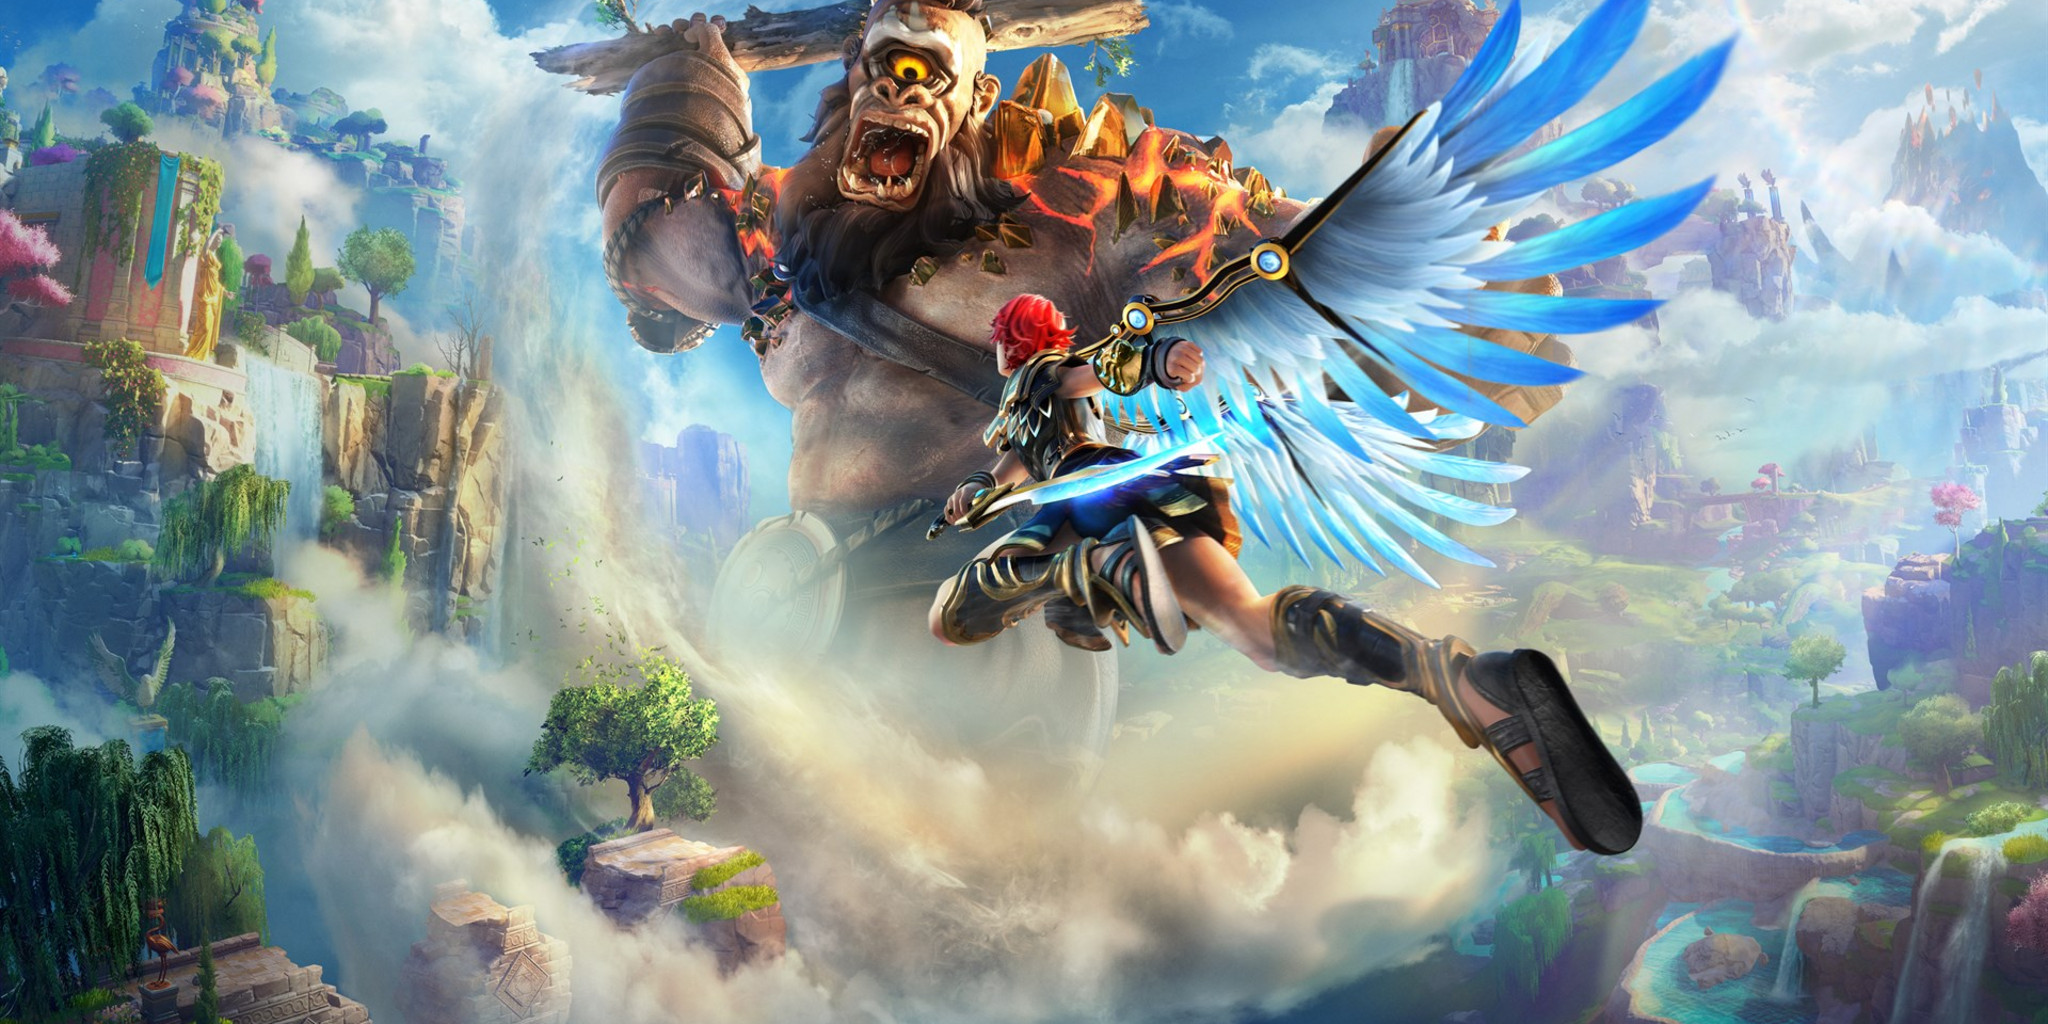 Is Immortals: Fenyx Rising Really A Copy of Breath of the Wild?